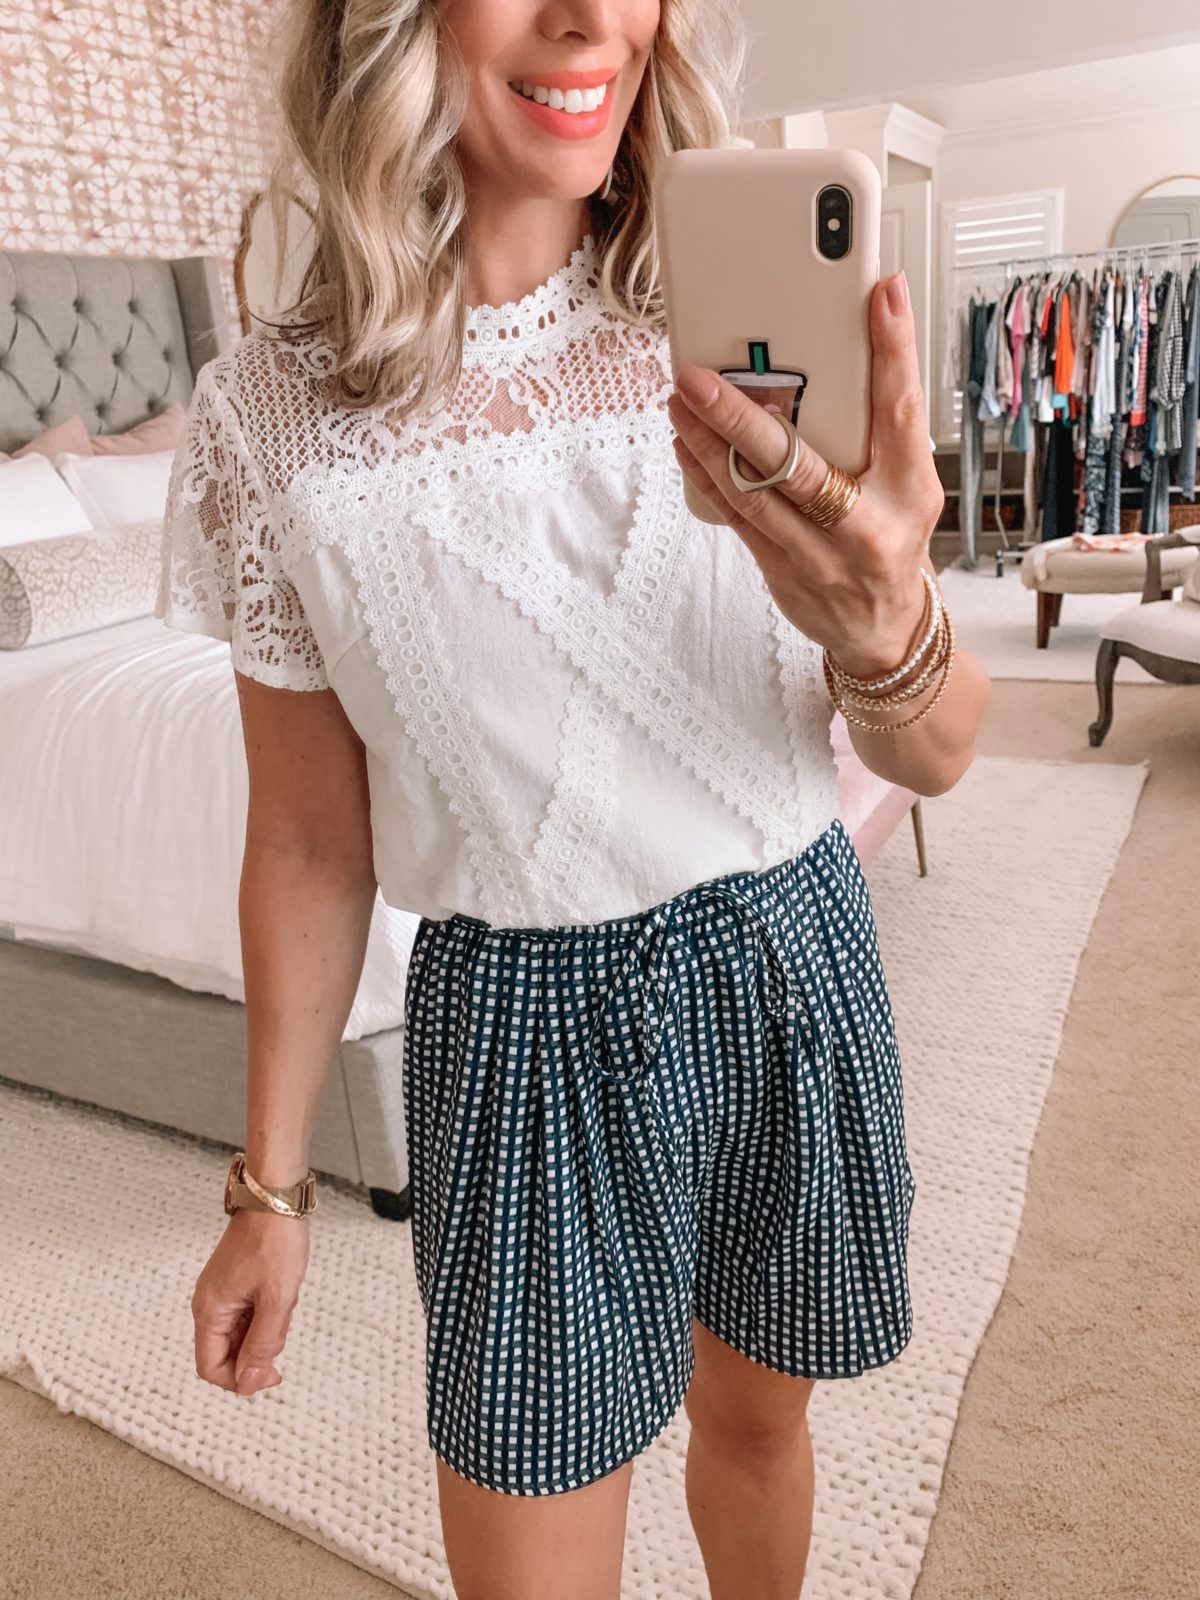 Amazon Fashion Finds, Lace Top, Checkered Shorts